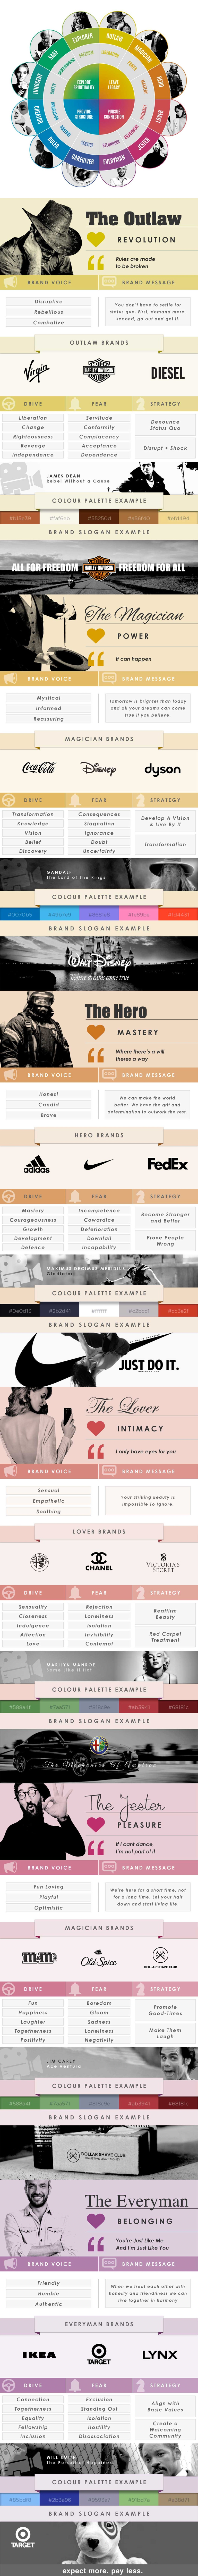 The Deep Connection Between Branding and Jungian Archetypes - Infographic